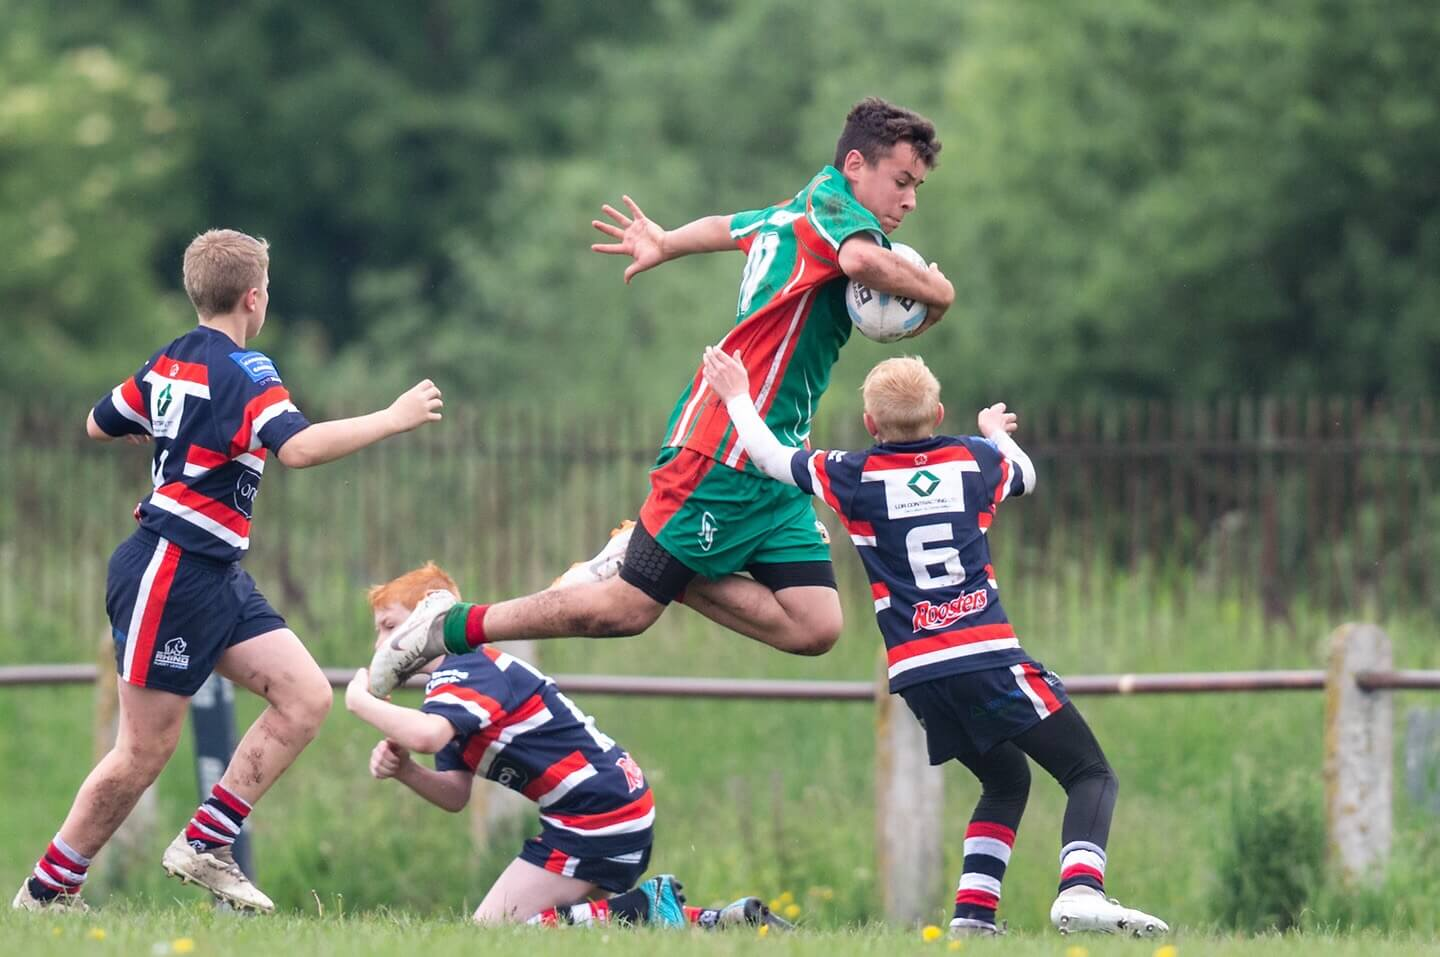 Report: Salford City Roosters U13s 28-16 North Wales Crusaders U13s